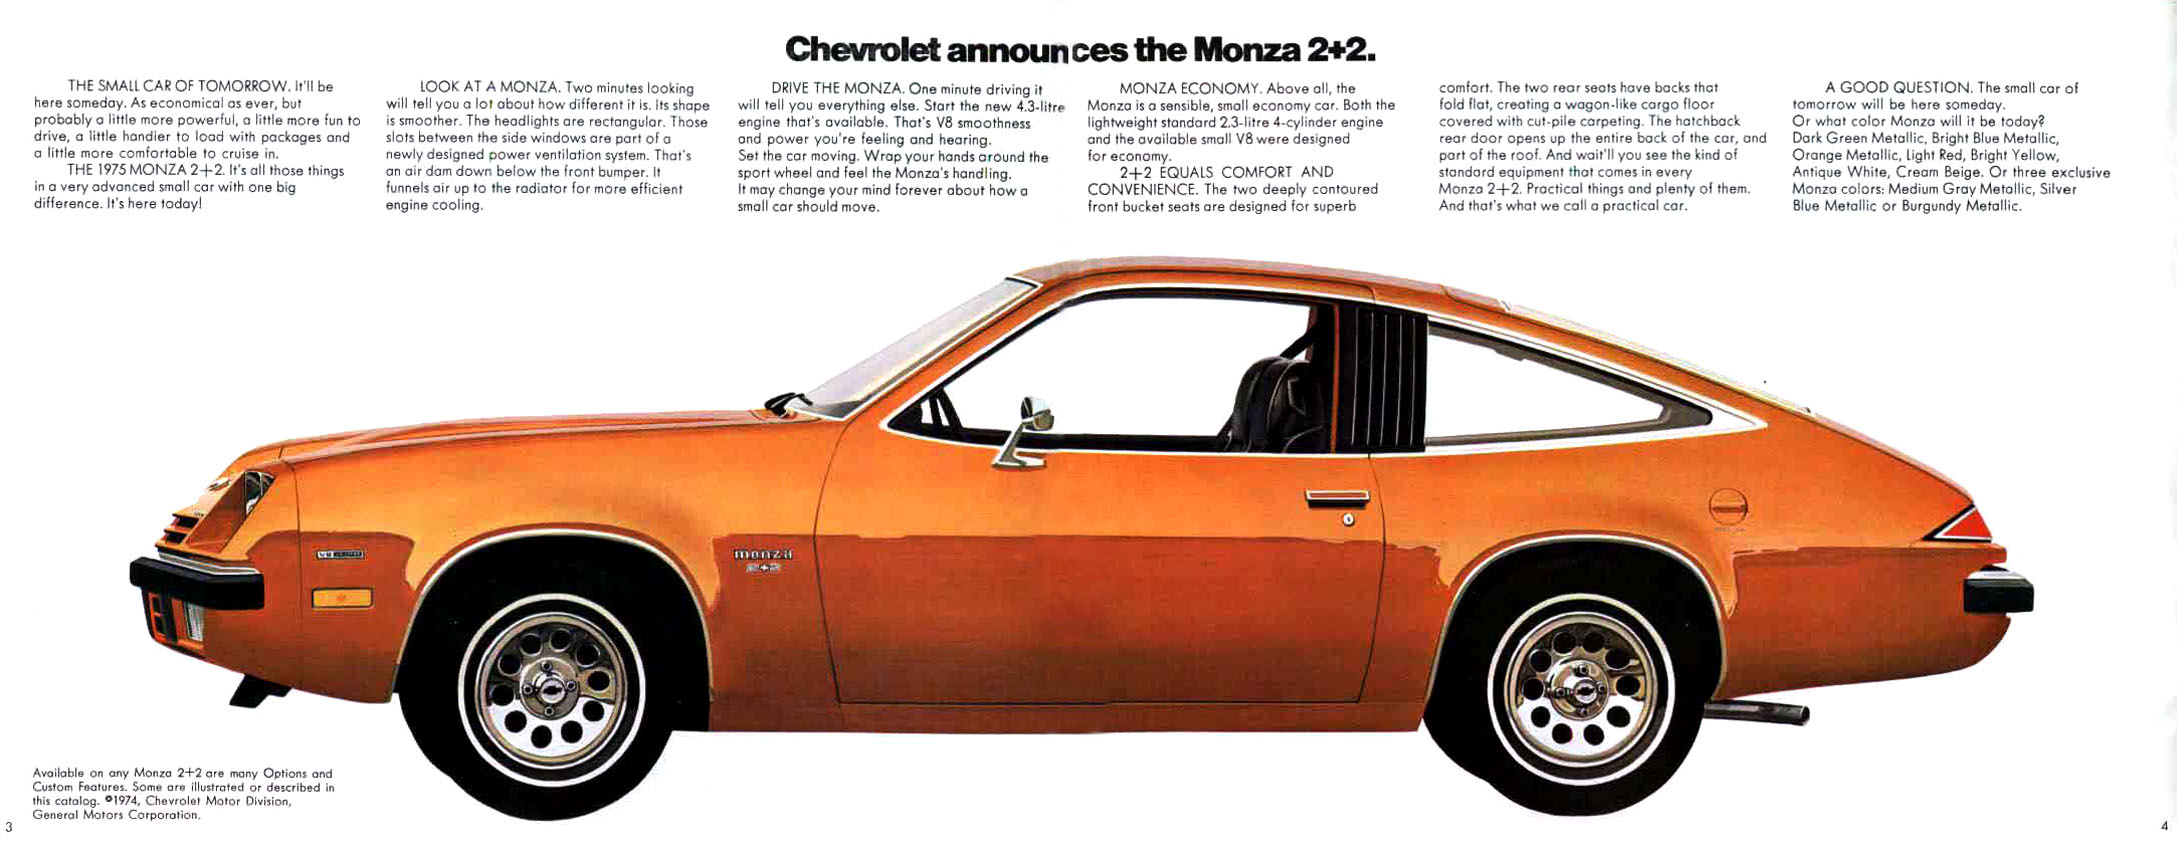 The Almost Muscle Car Chevy Monza 1975 1980 Epautos 1970 1981 Camaro Dash Instrument Cluster Circuit Board For Models 70s And Early 80s Were Weird Years Industry Era Of 60s Was Fading Fast But Fumes Still Lingered What Would